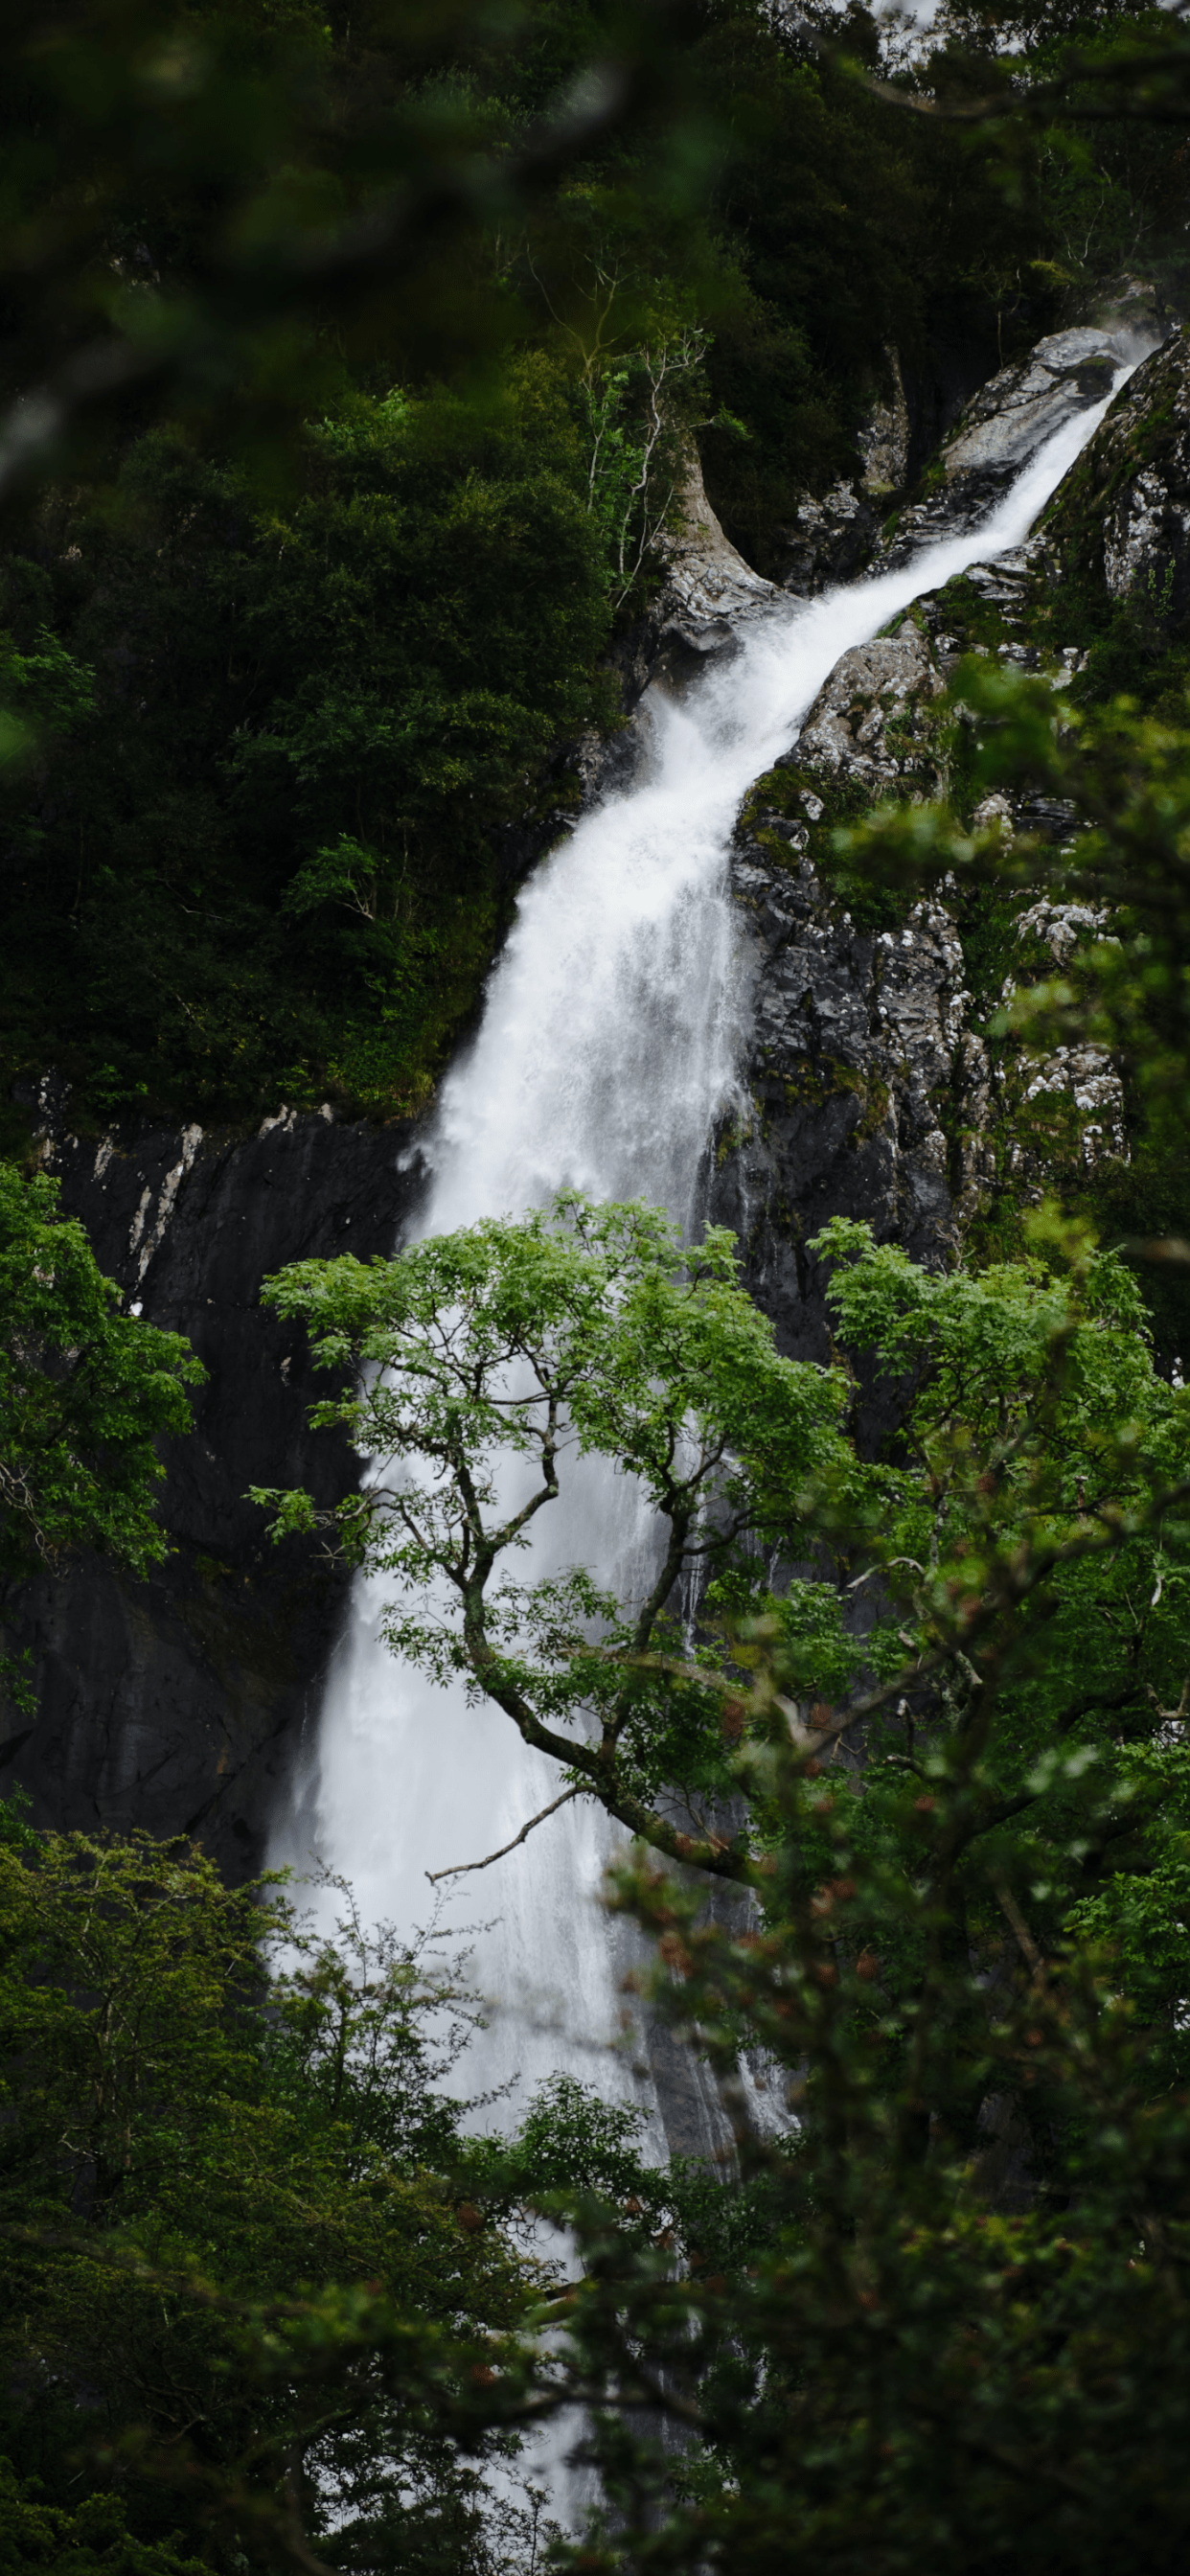 iPhone wallpapers jungle snowdonia national park Jungle